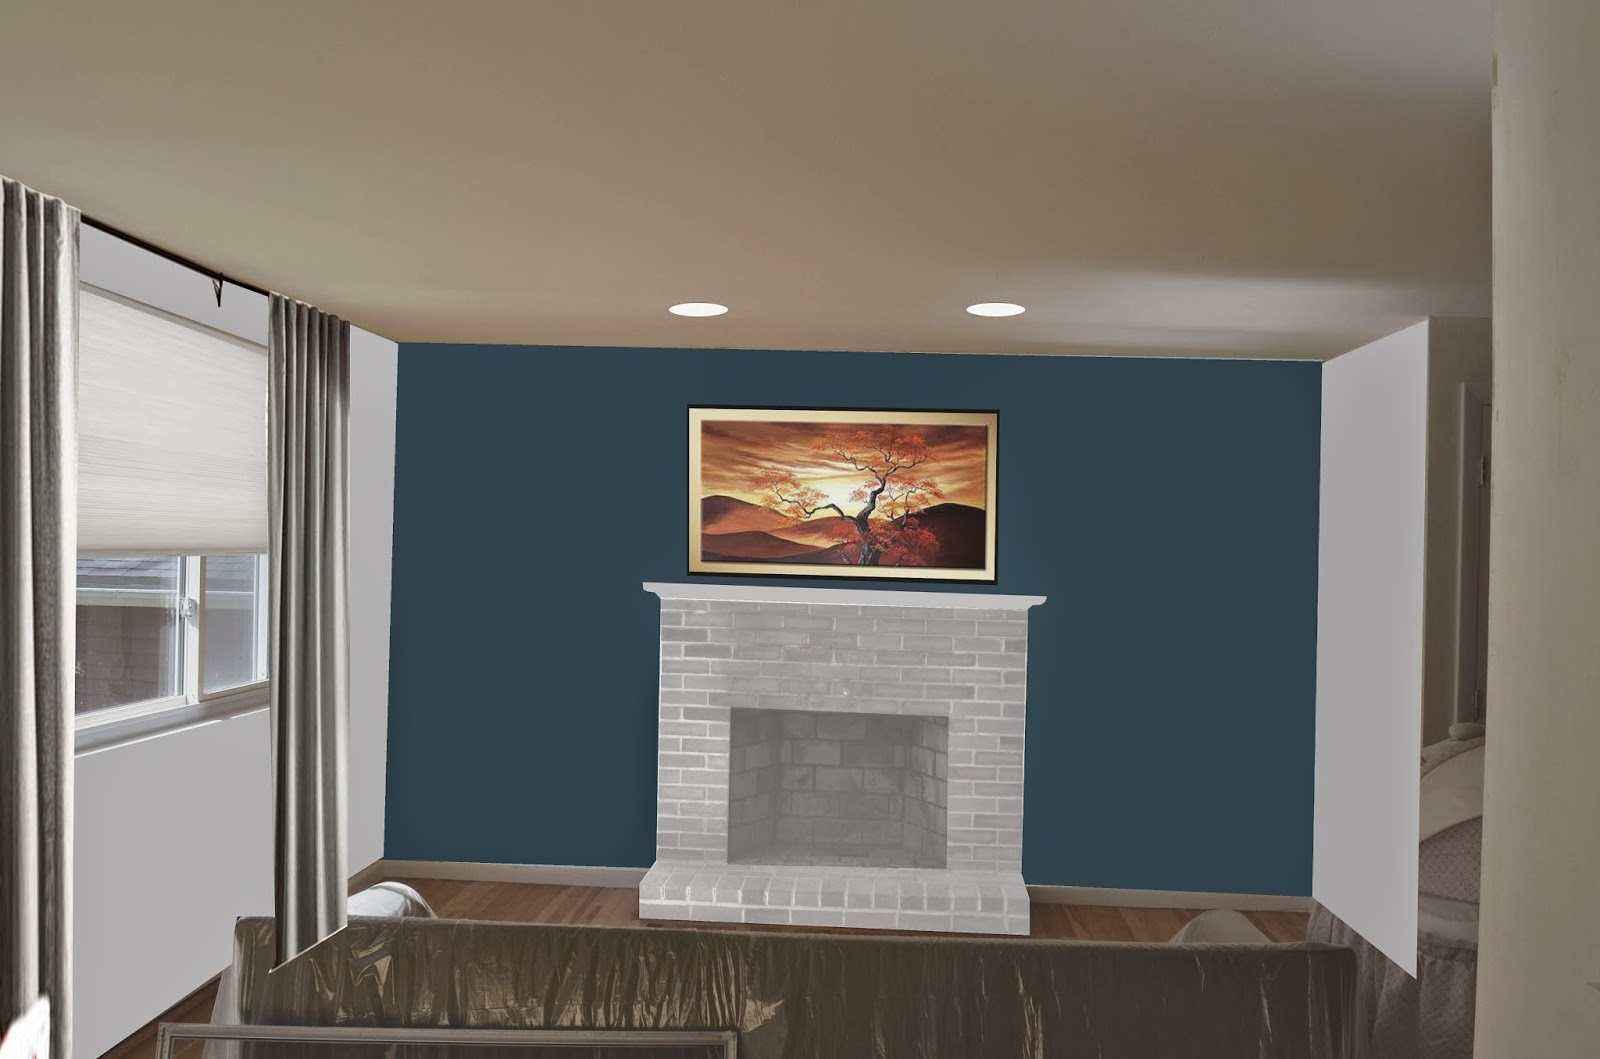 lighting i recommend adding two recessed down lights above the fireplace to had some extra light to the room currently they have 2 lamps for this space - Dining Room Paint Colors